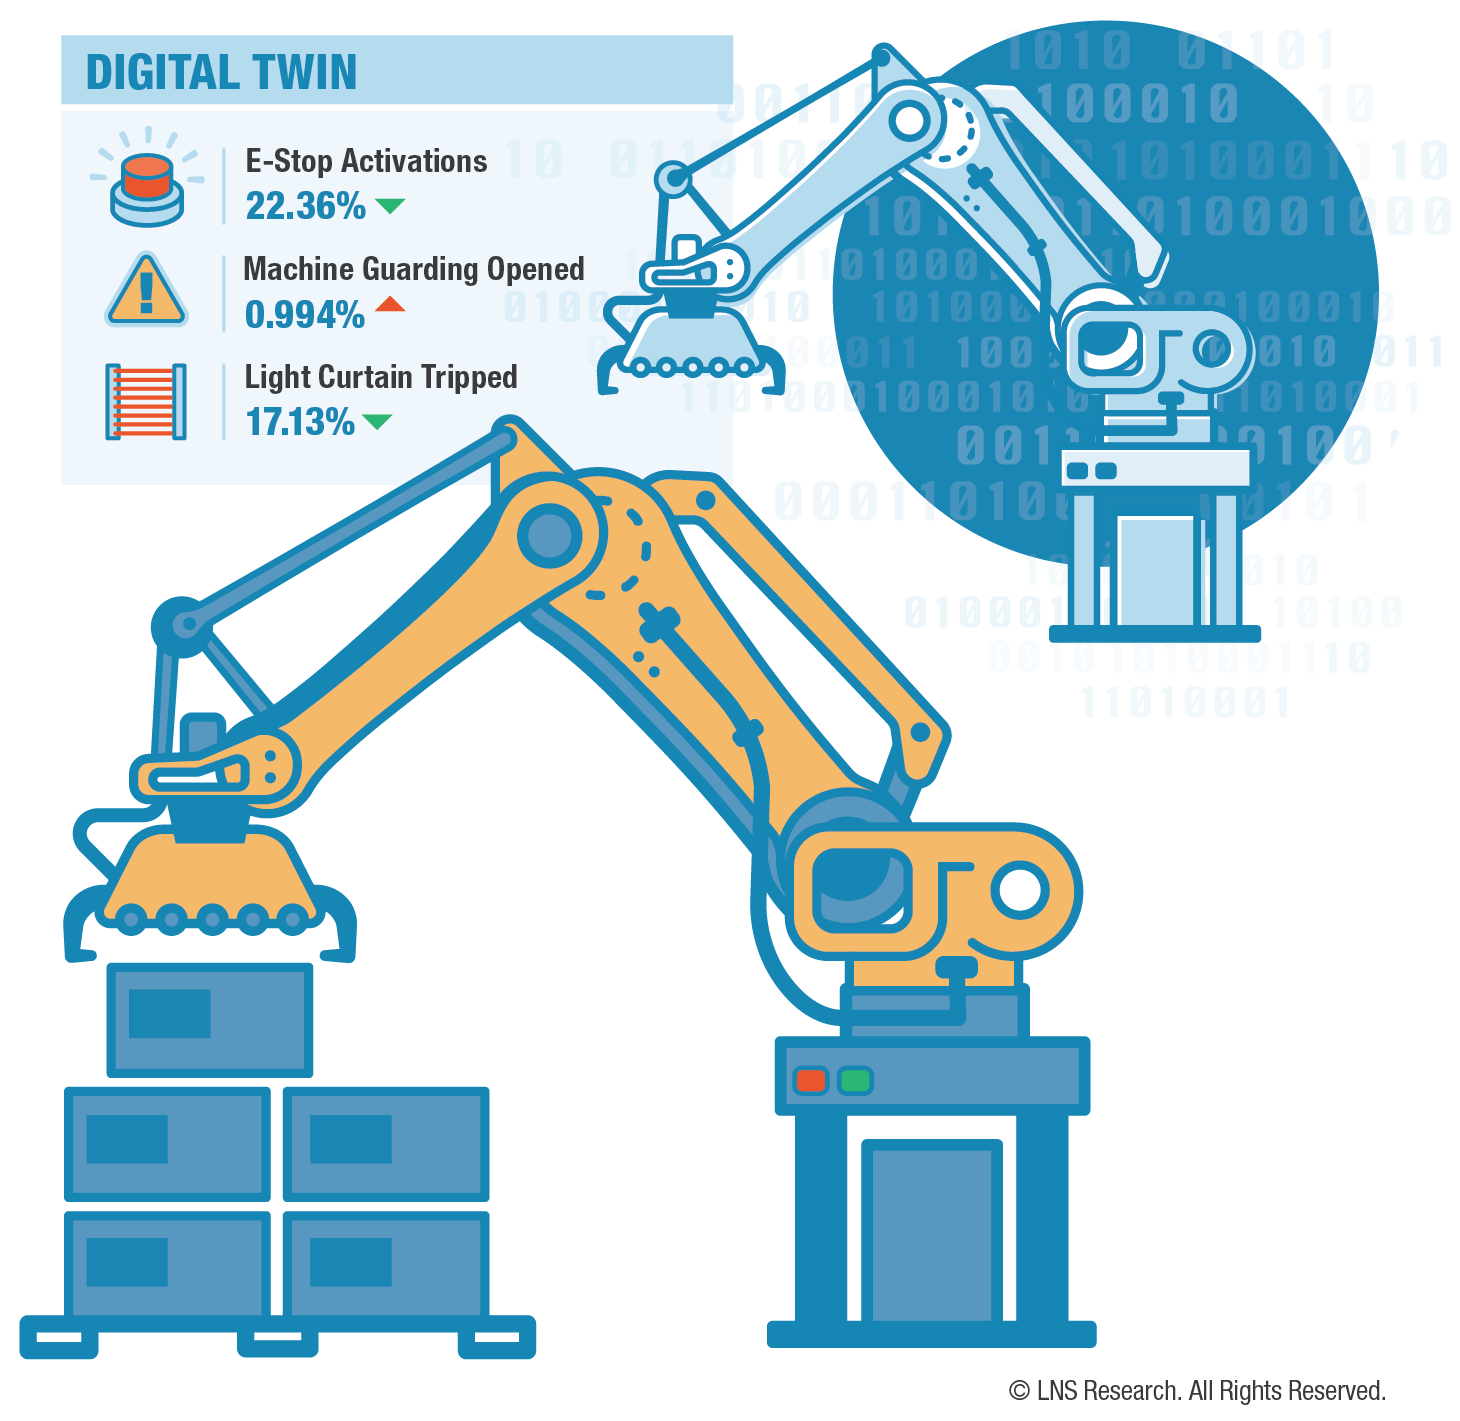 Digital Twin in Safety